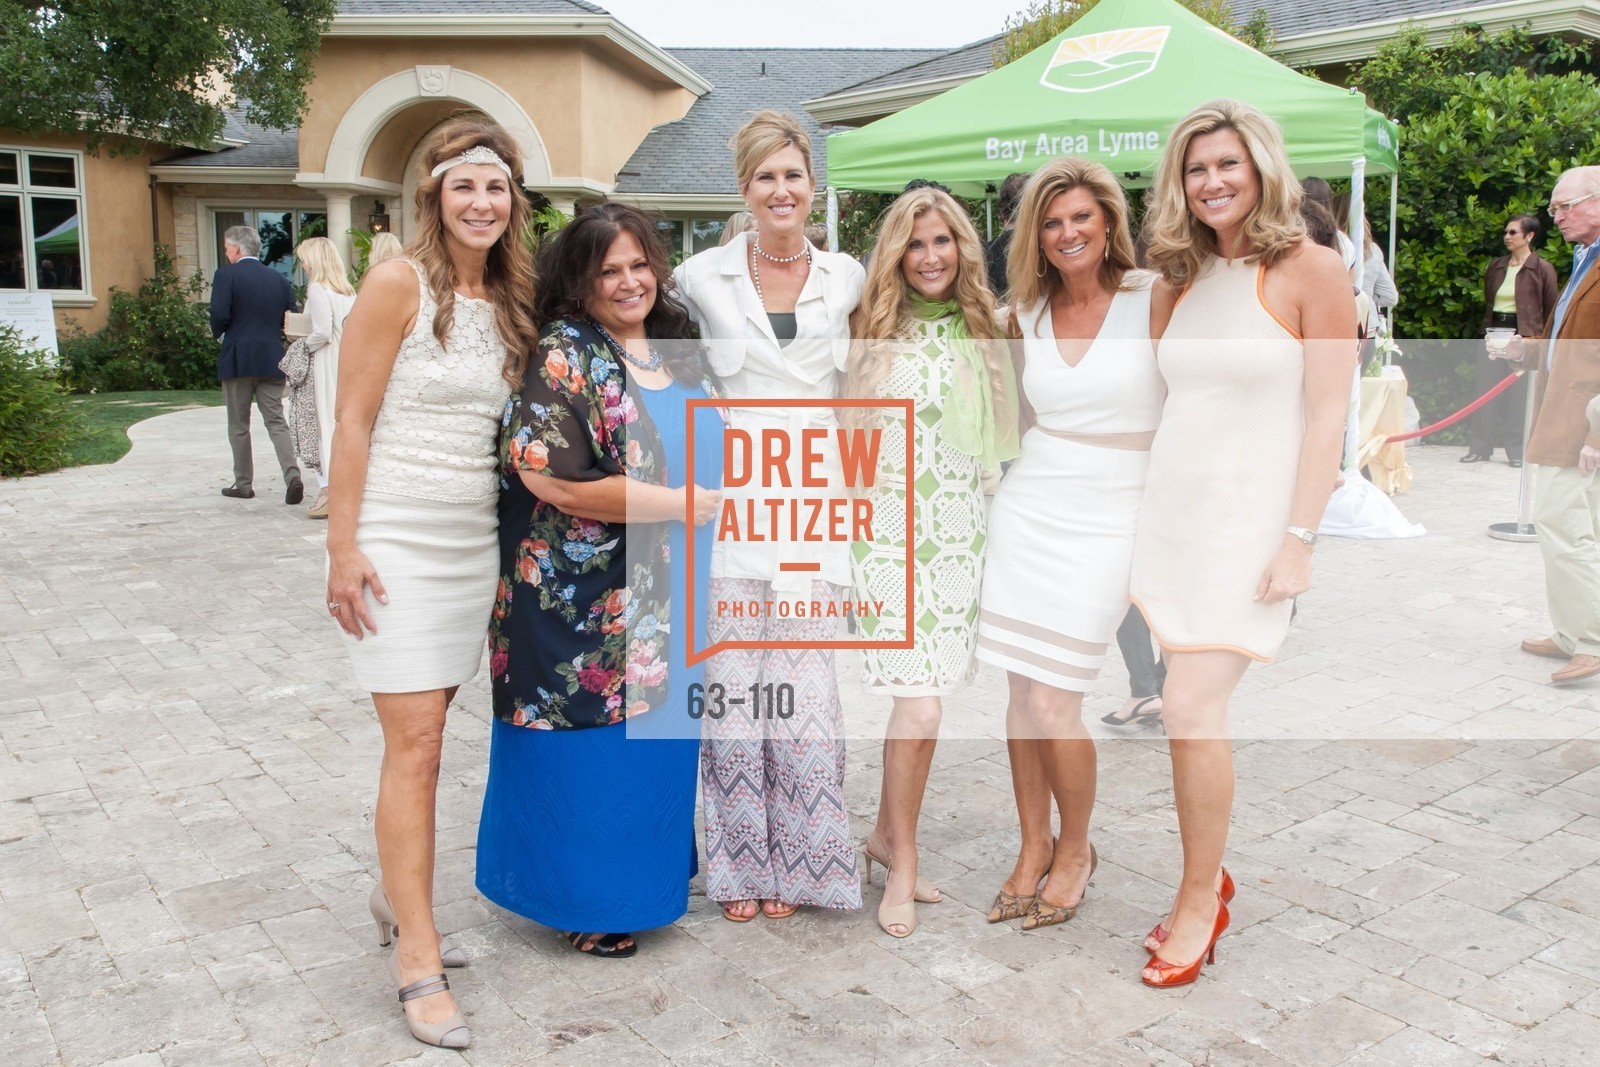 Stacy Nemeth, Mary Winchester, Aggie Cousins, Sherry Cagan, Vita Strimaitis, Lucy Kuchan, LYME AID 2015 Benefiting the Bay Area Lyme Foundation, Private Residence, May 16th, 2015